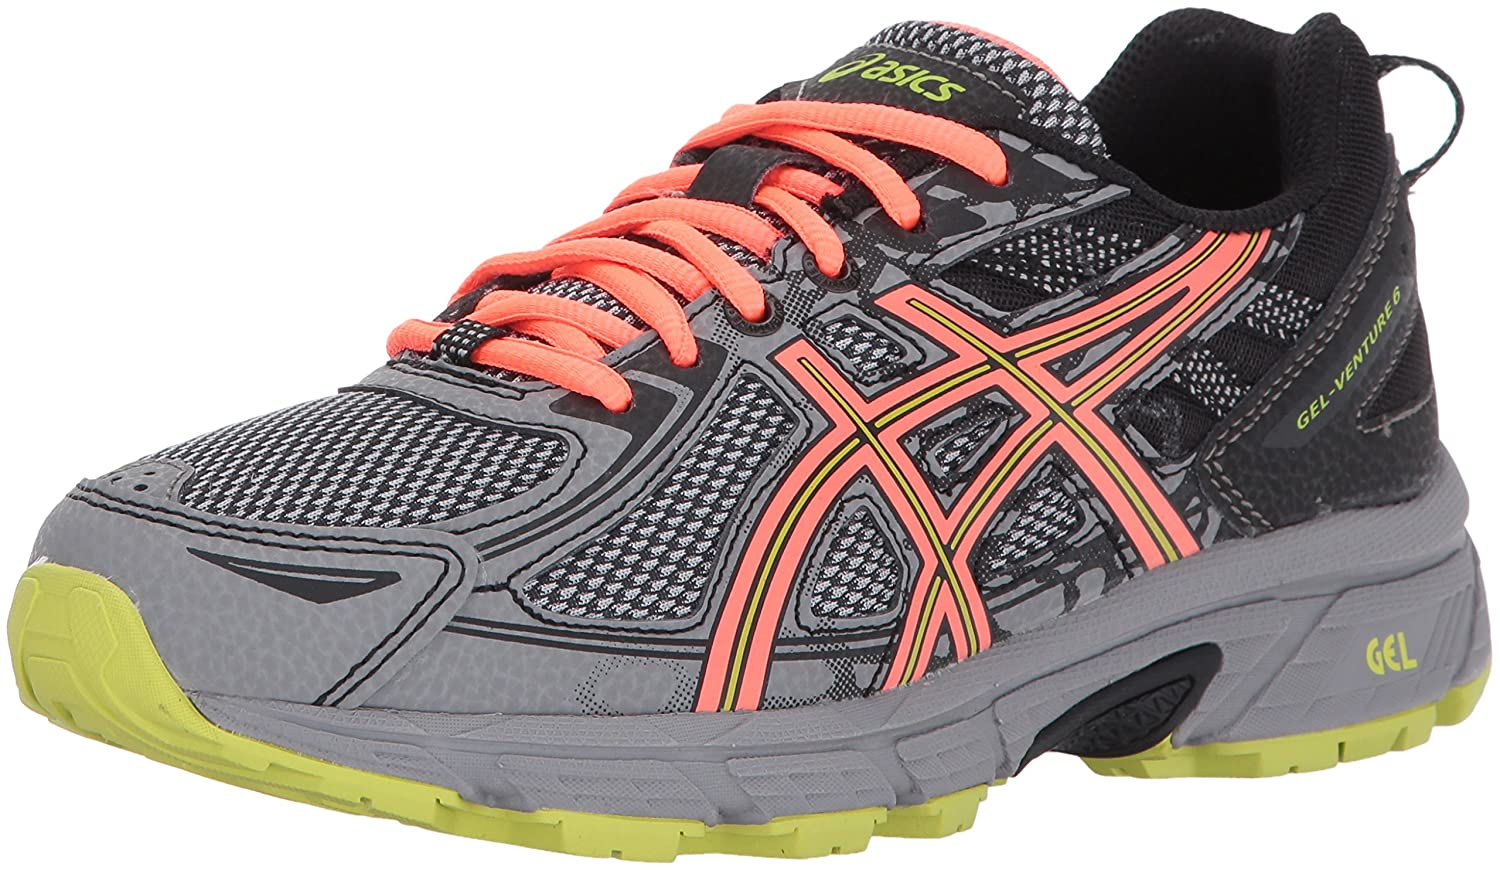 ASICS Women's Gel-Venture 6 Running-Shoes US|Phantom/Coral/Lime B01MRWWRXJ 11 D US|Phantom/Coral/Lime Running-Shoes 043753